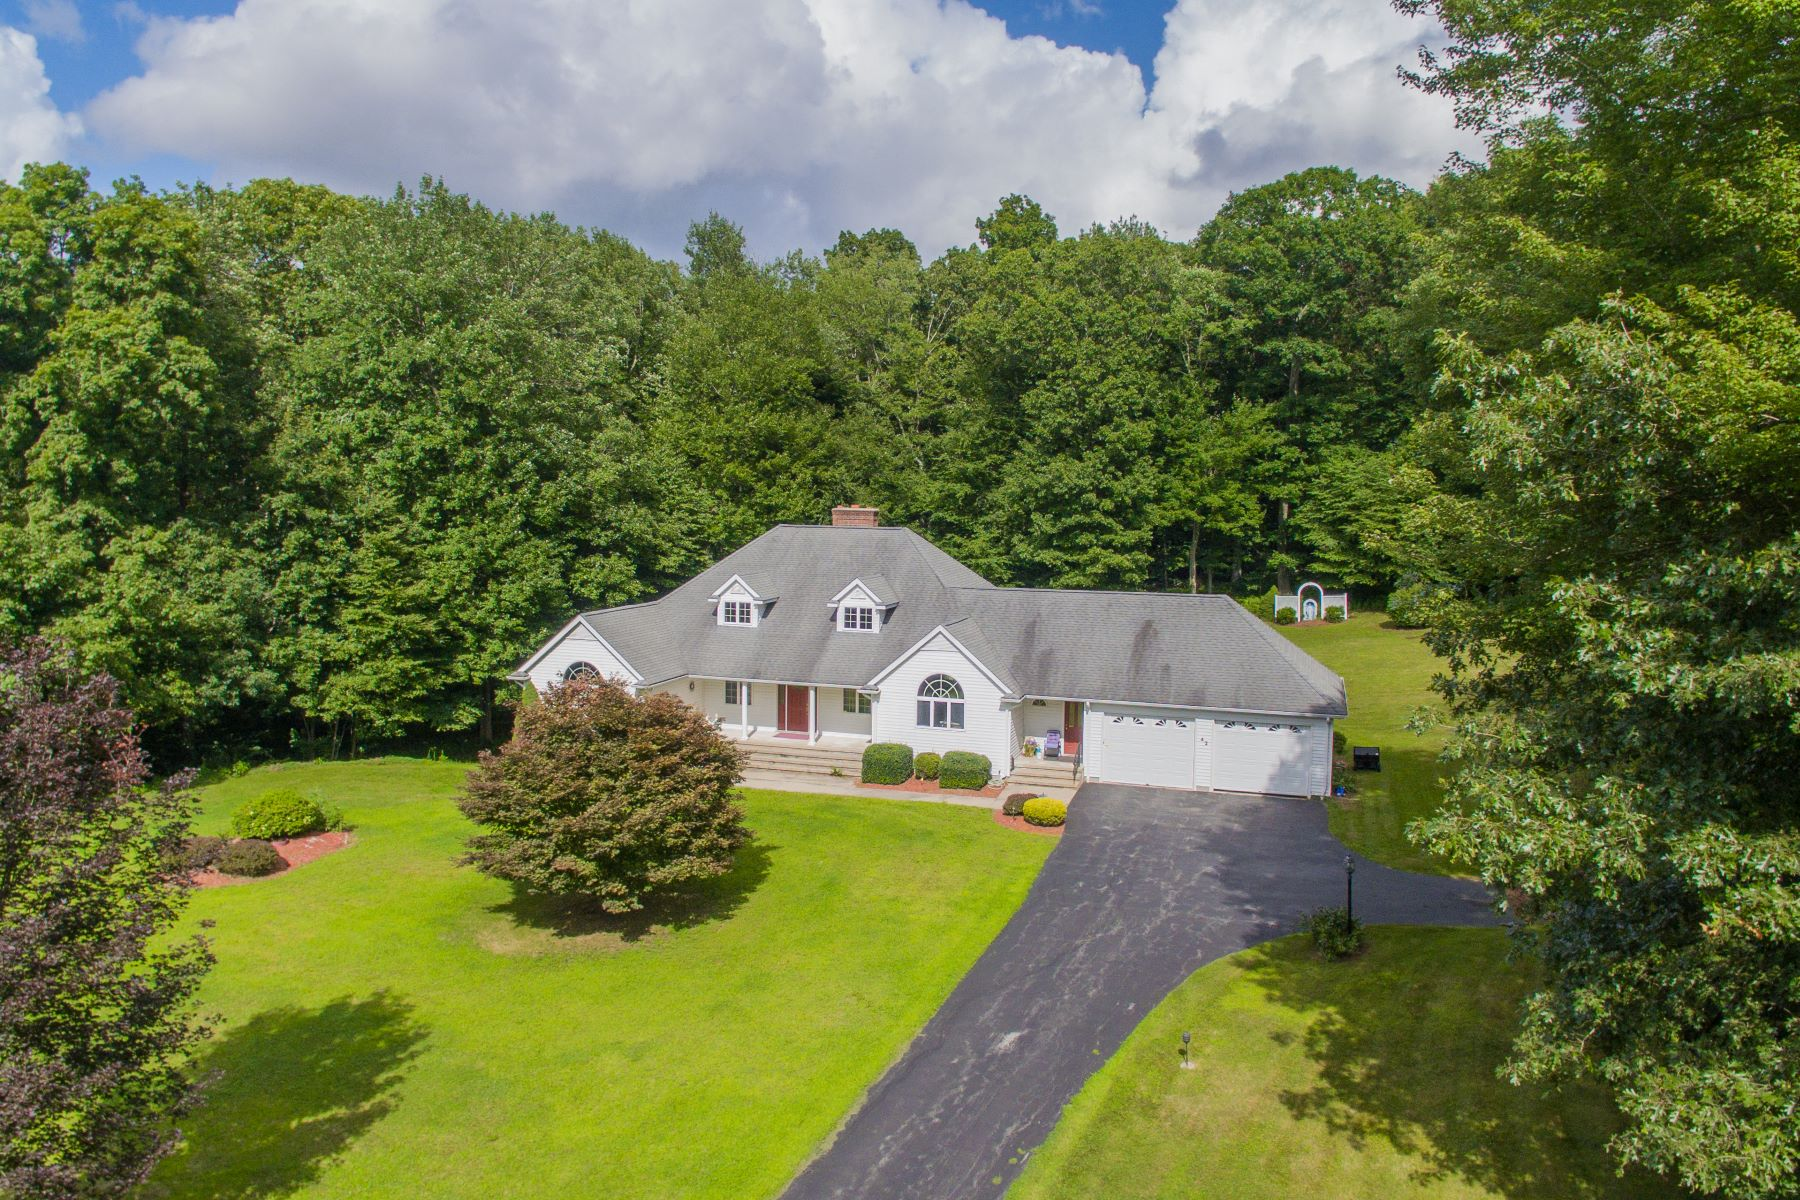 single family homes for Sale at Privacy Meets Convenience in this Expansive Custom Built Ranch 42 Rosemarie Lane, Bozrah, Connecticut 06334 United States